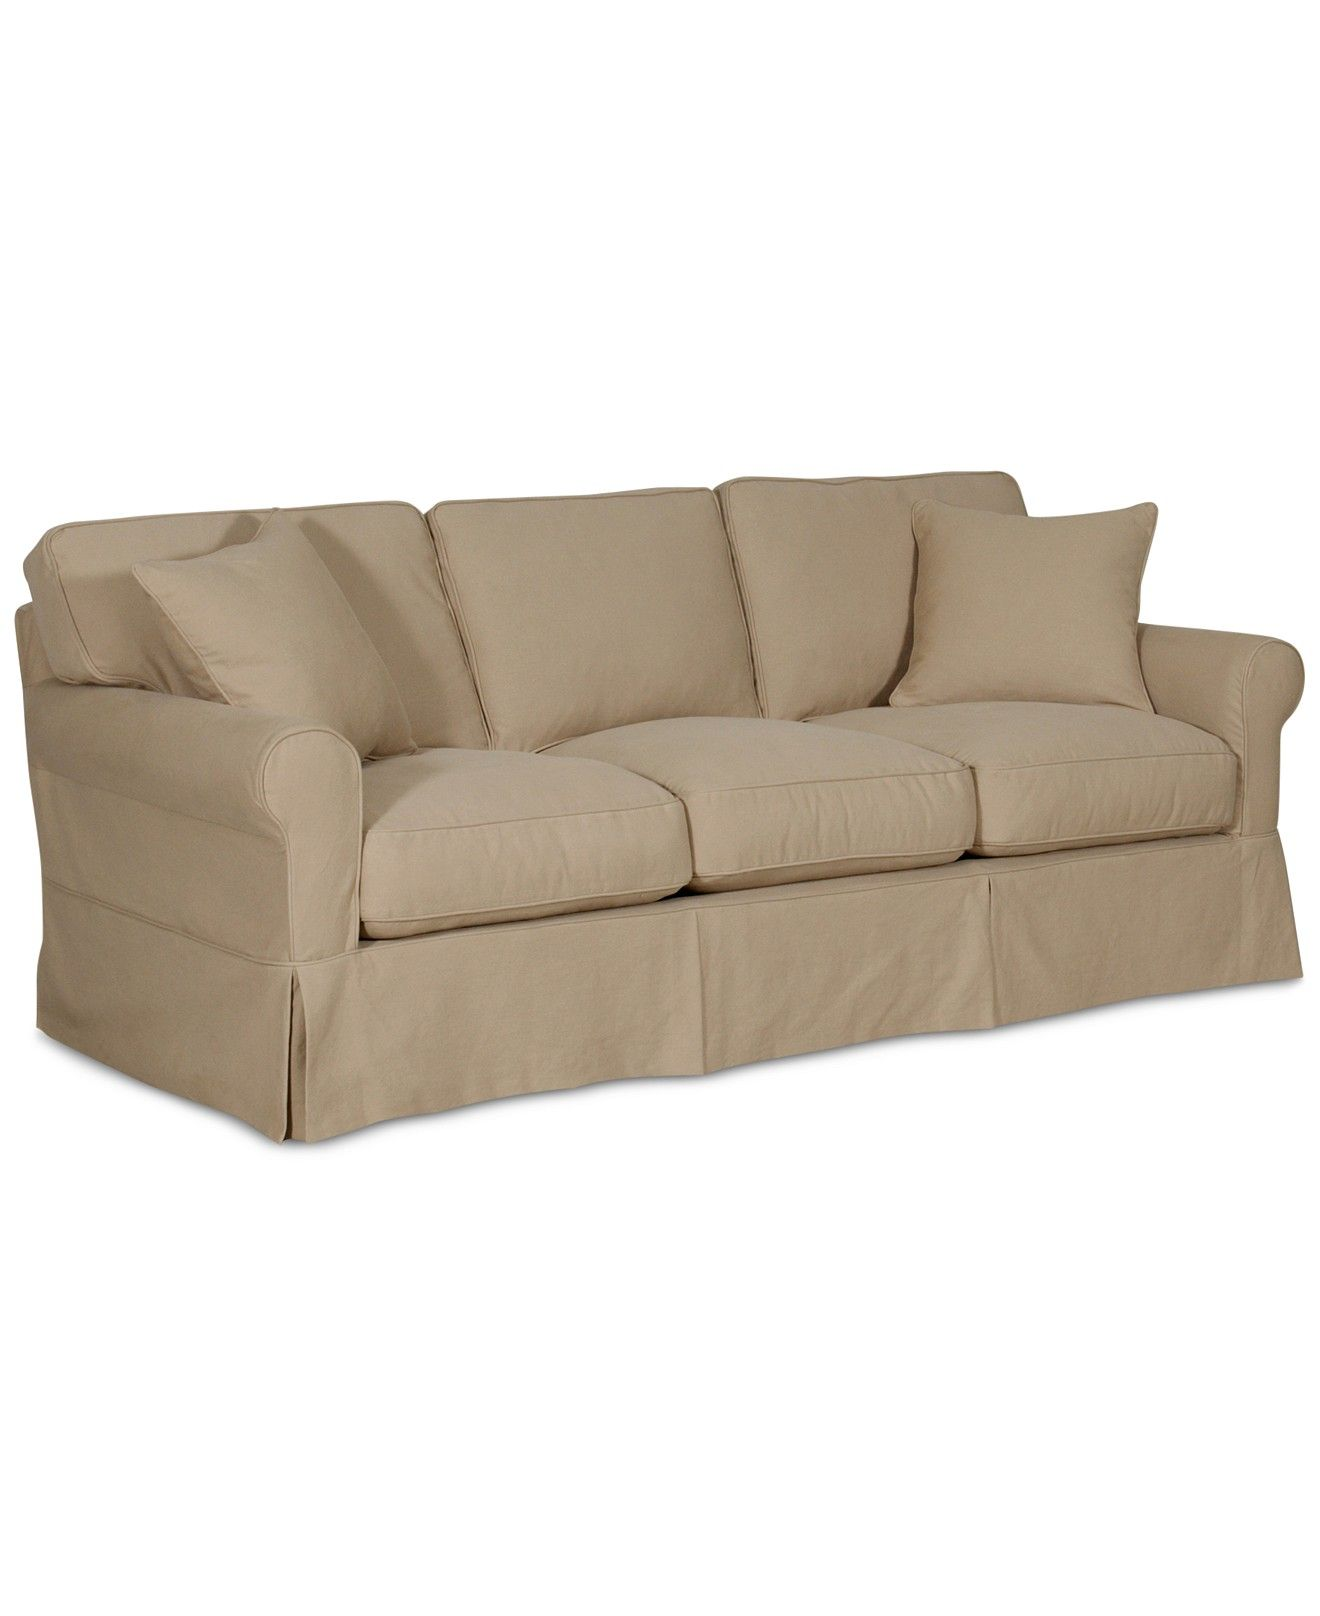 Leanne Fabric Slipcover Sofa Couches Sofas Furniture